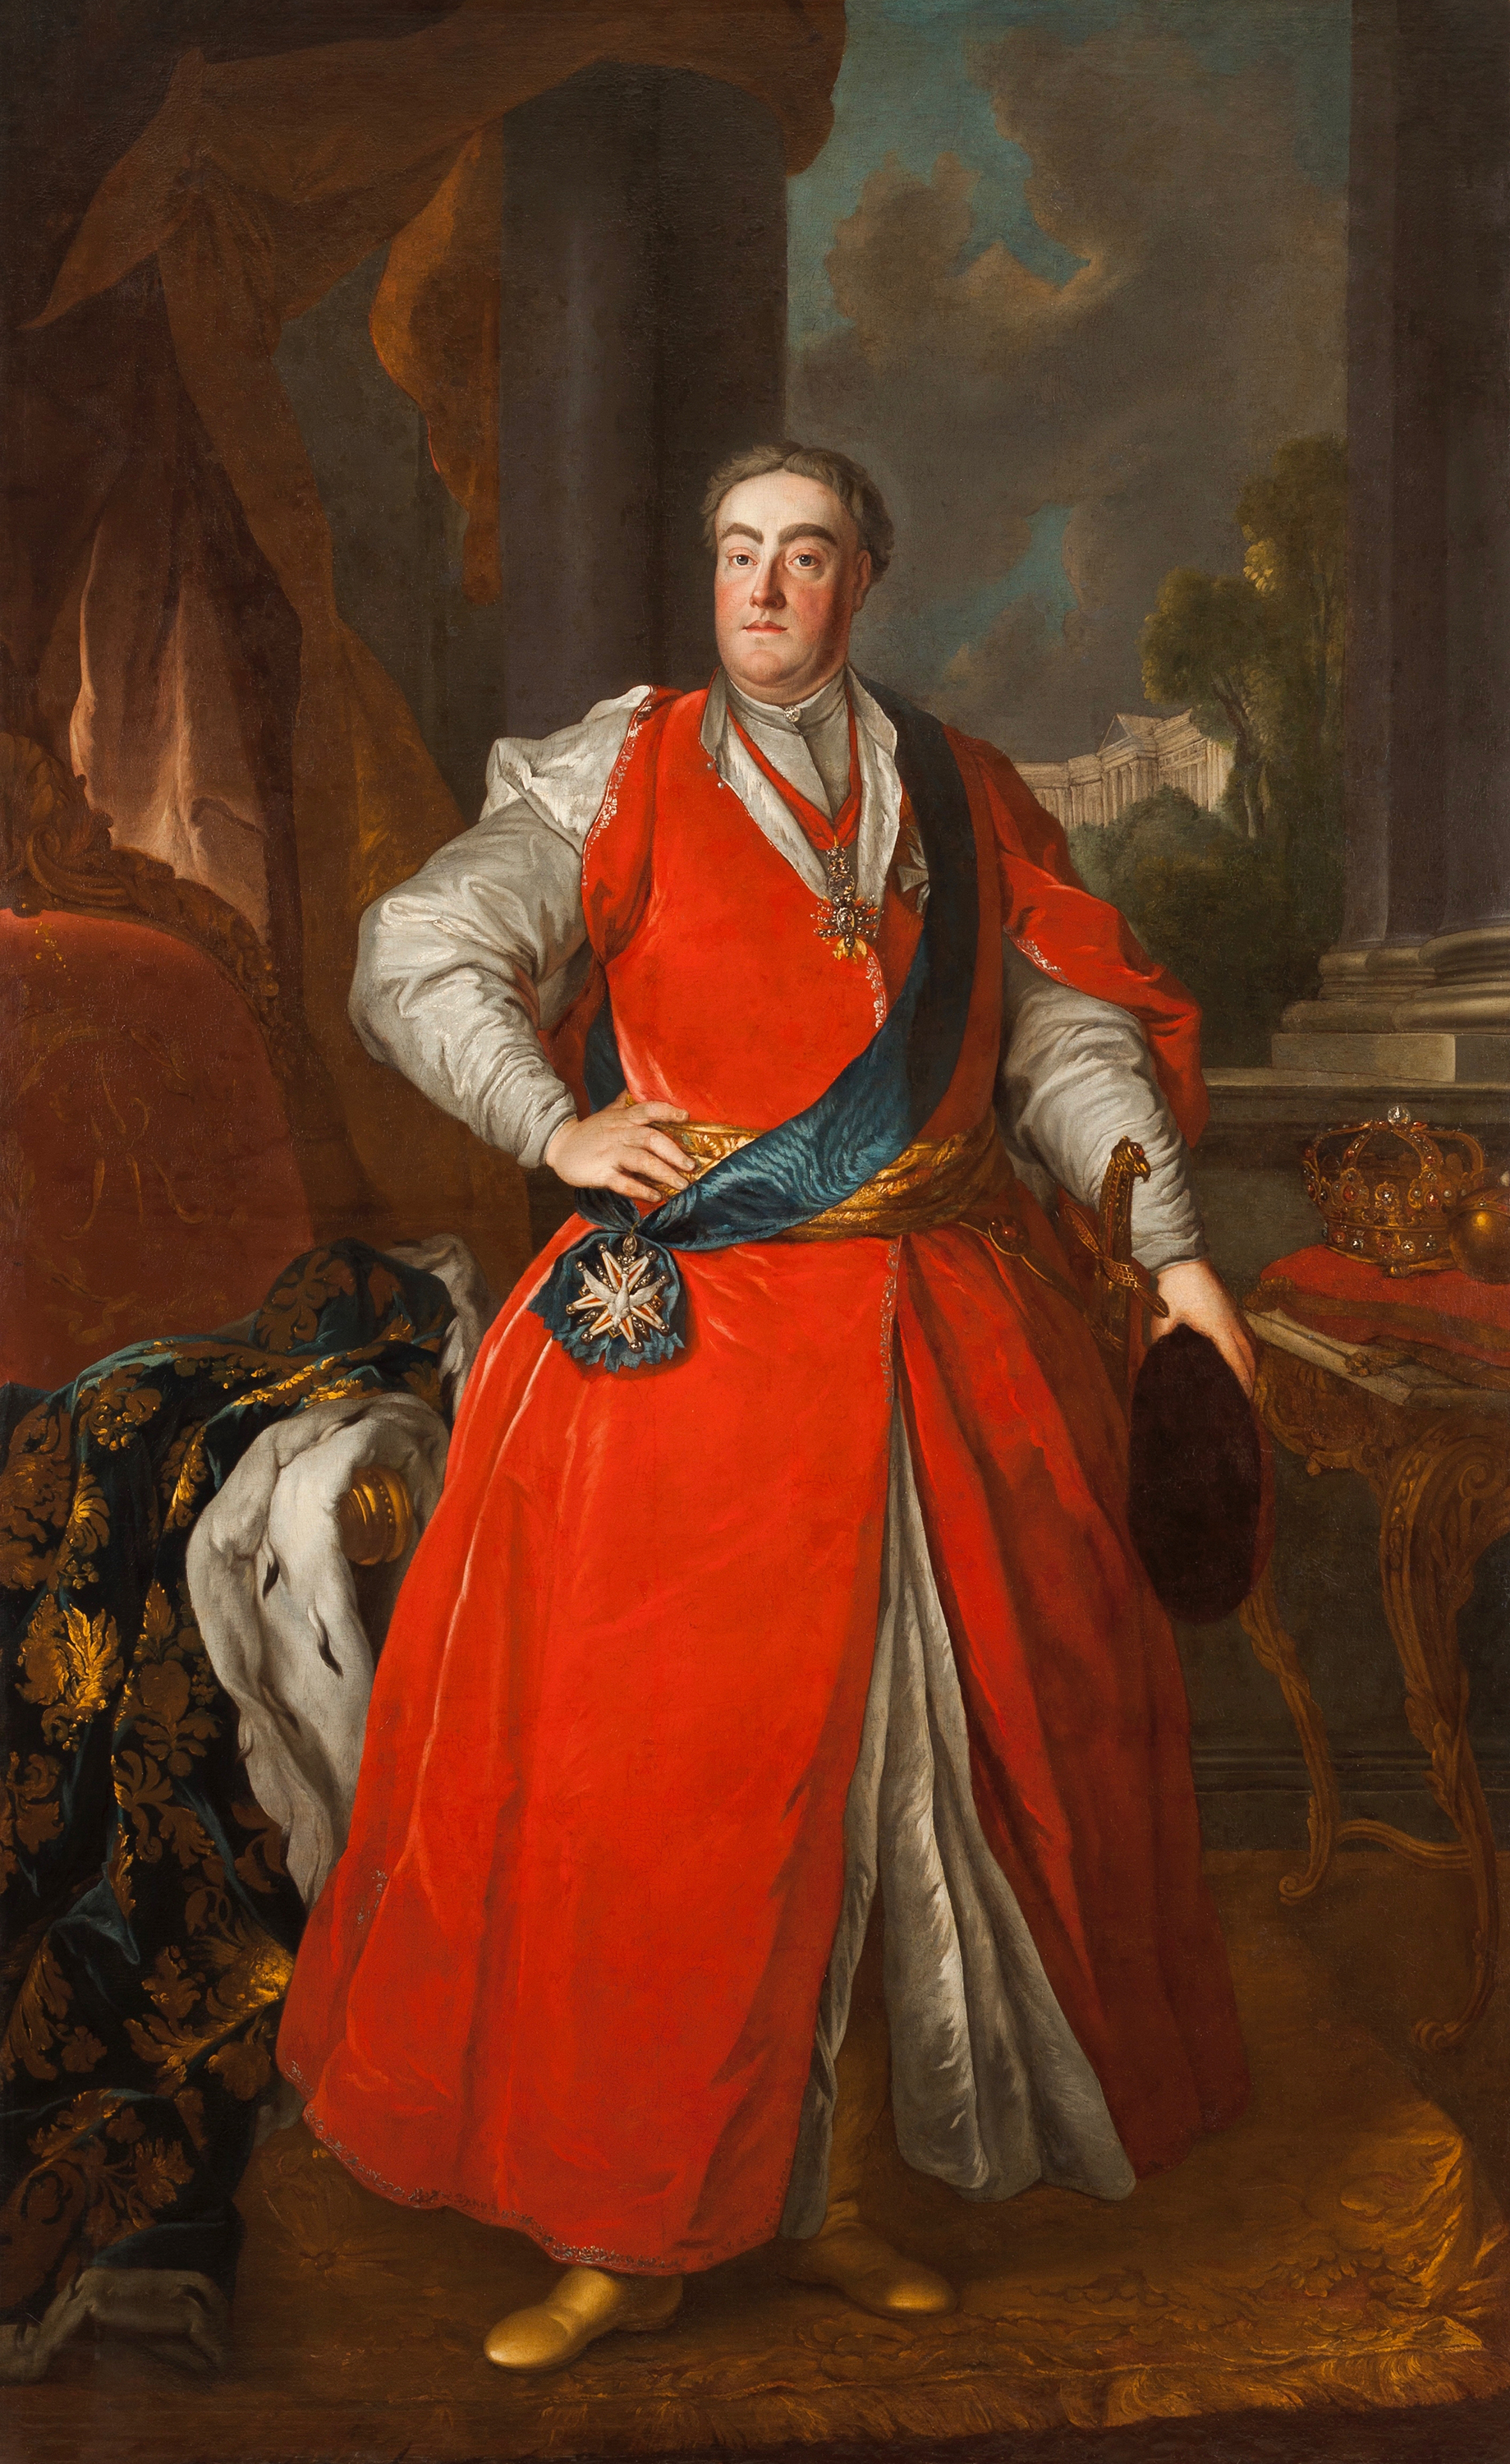 Portrait of August III (1696-1763), King of Poland, Grand Duke of Lithuania (1733-1763), Elector of Saxony (as Frederick August I) from 1733 to 1763, 1737 | Portraits of Kings